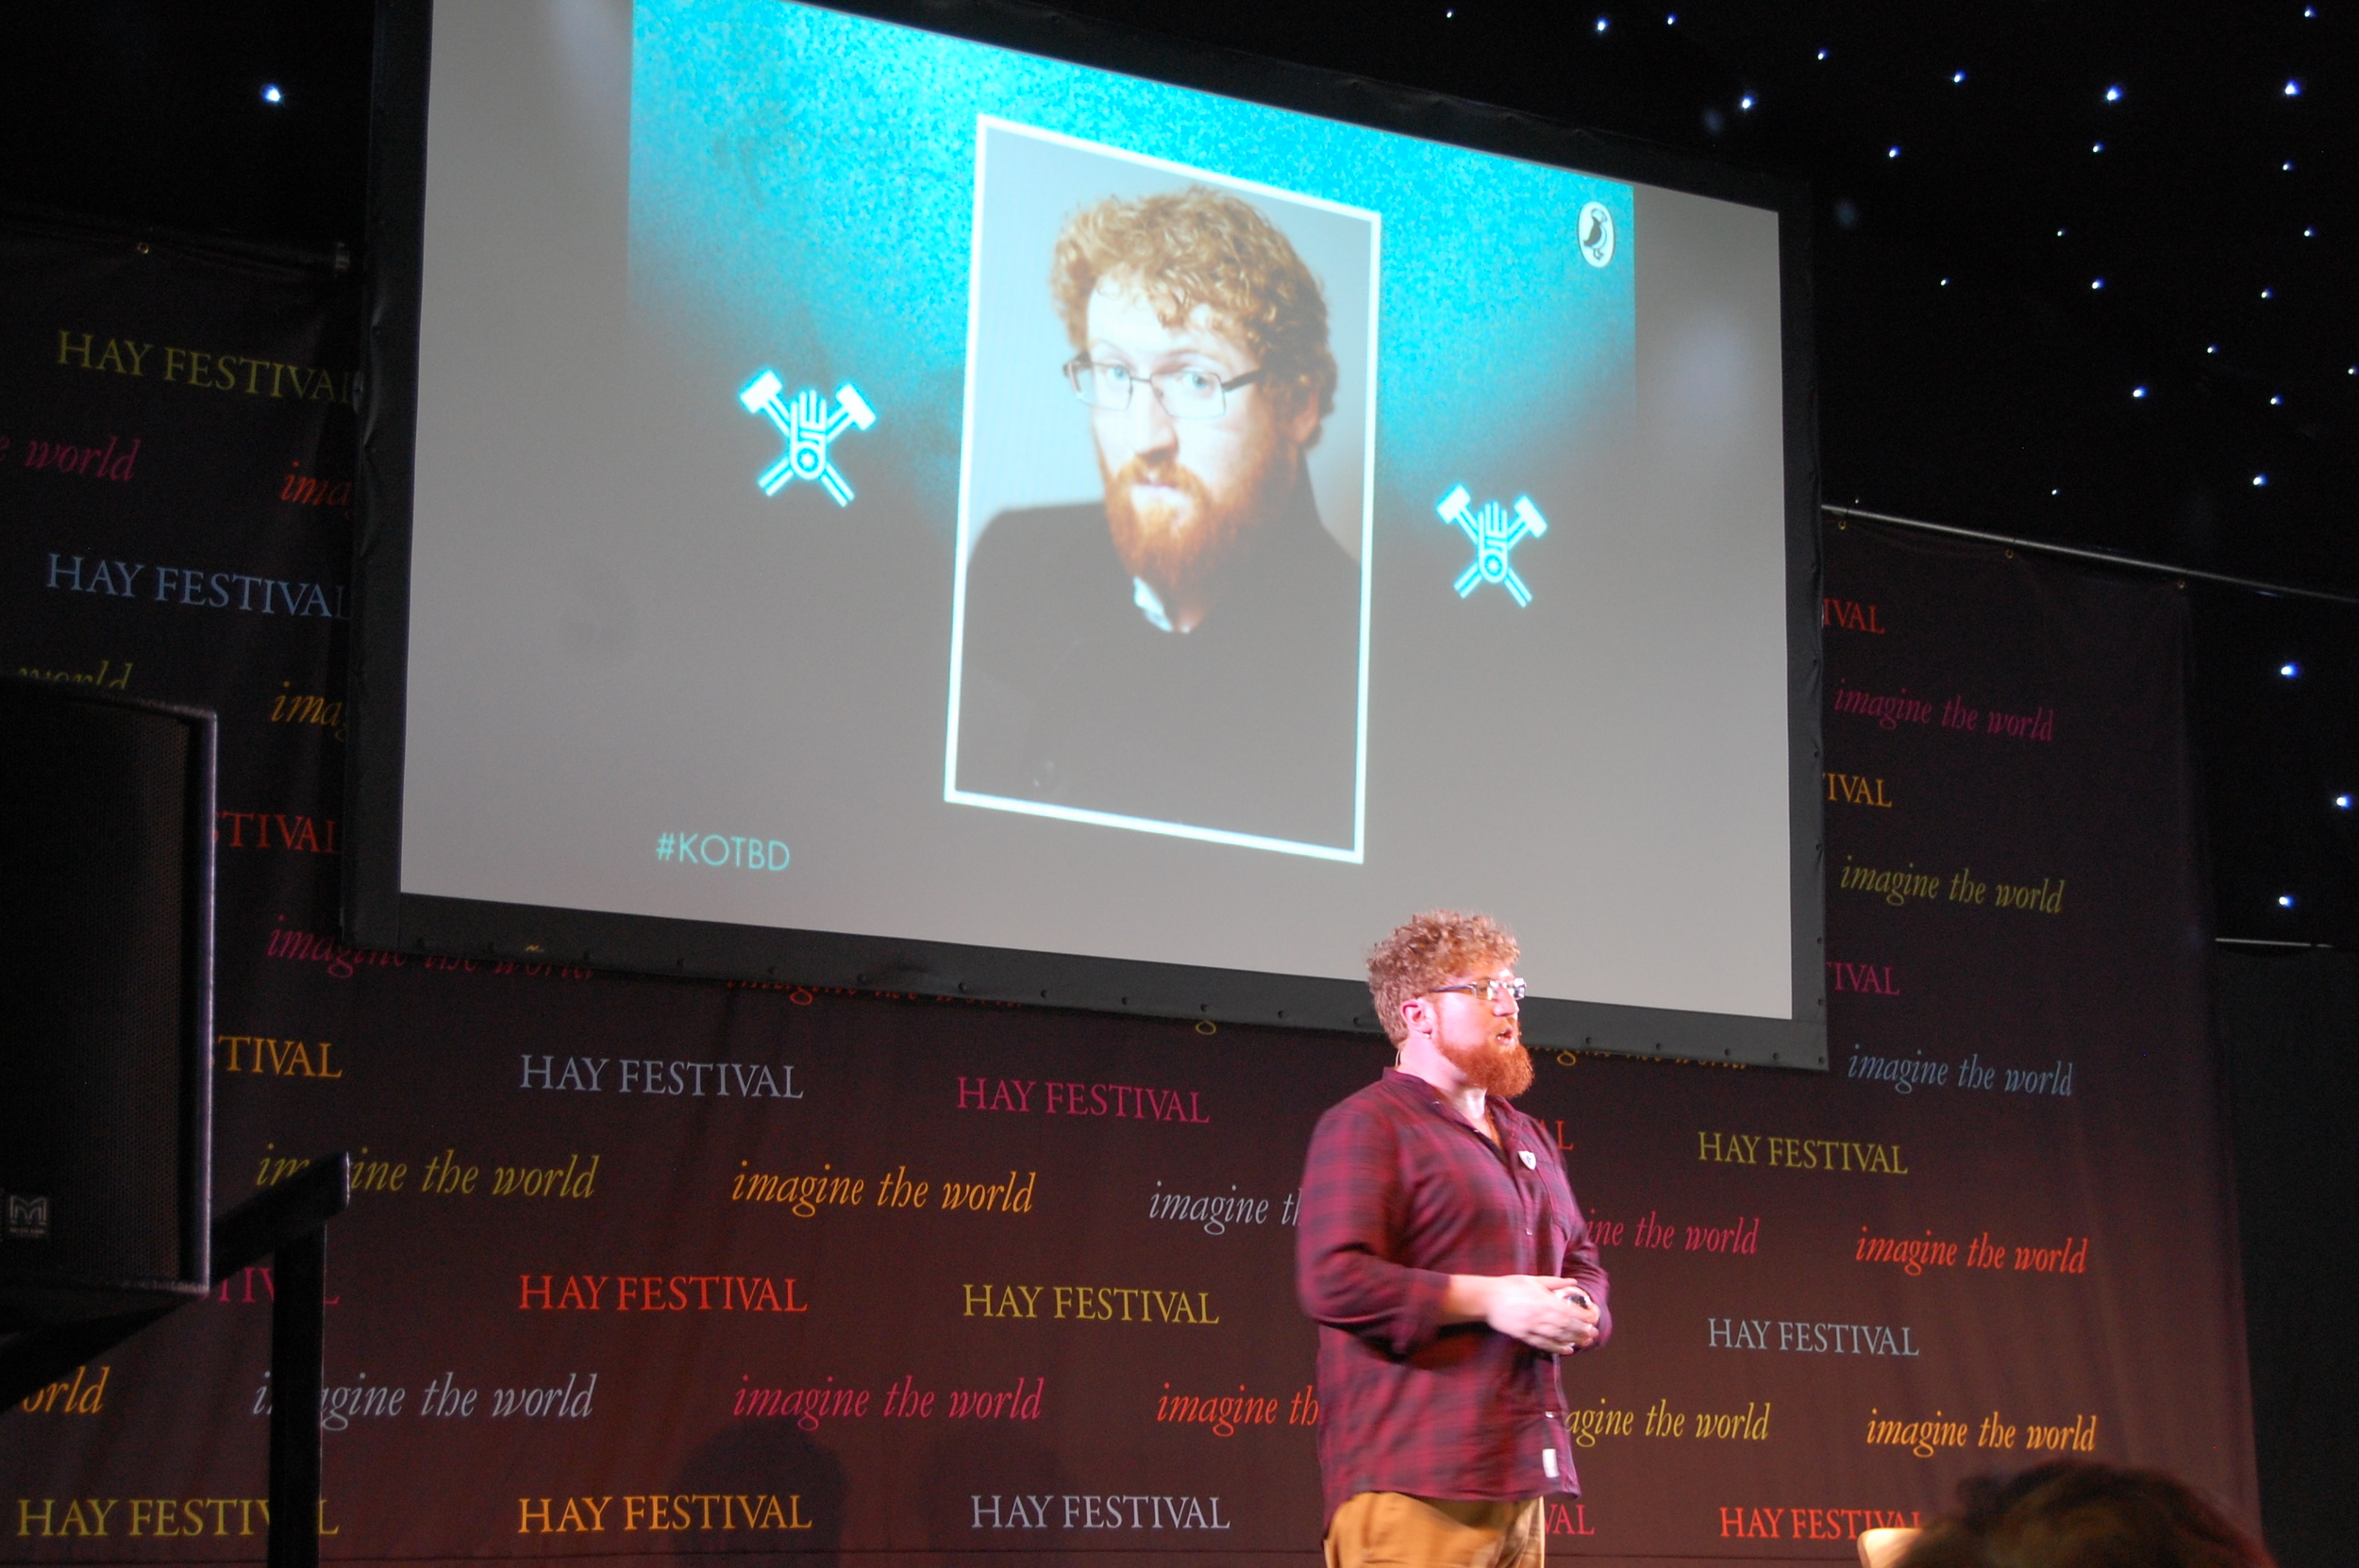 Dave at the Hay Festival